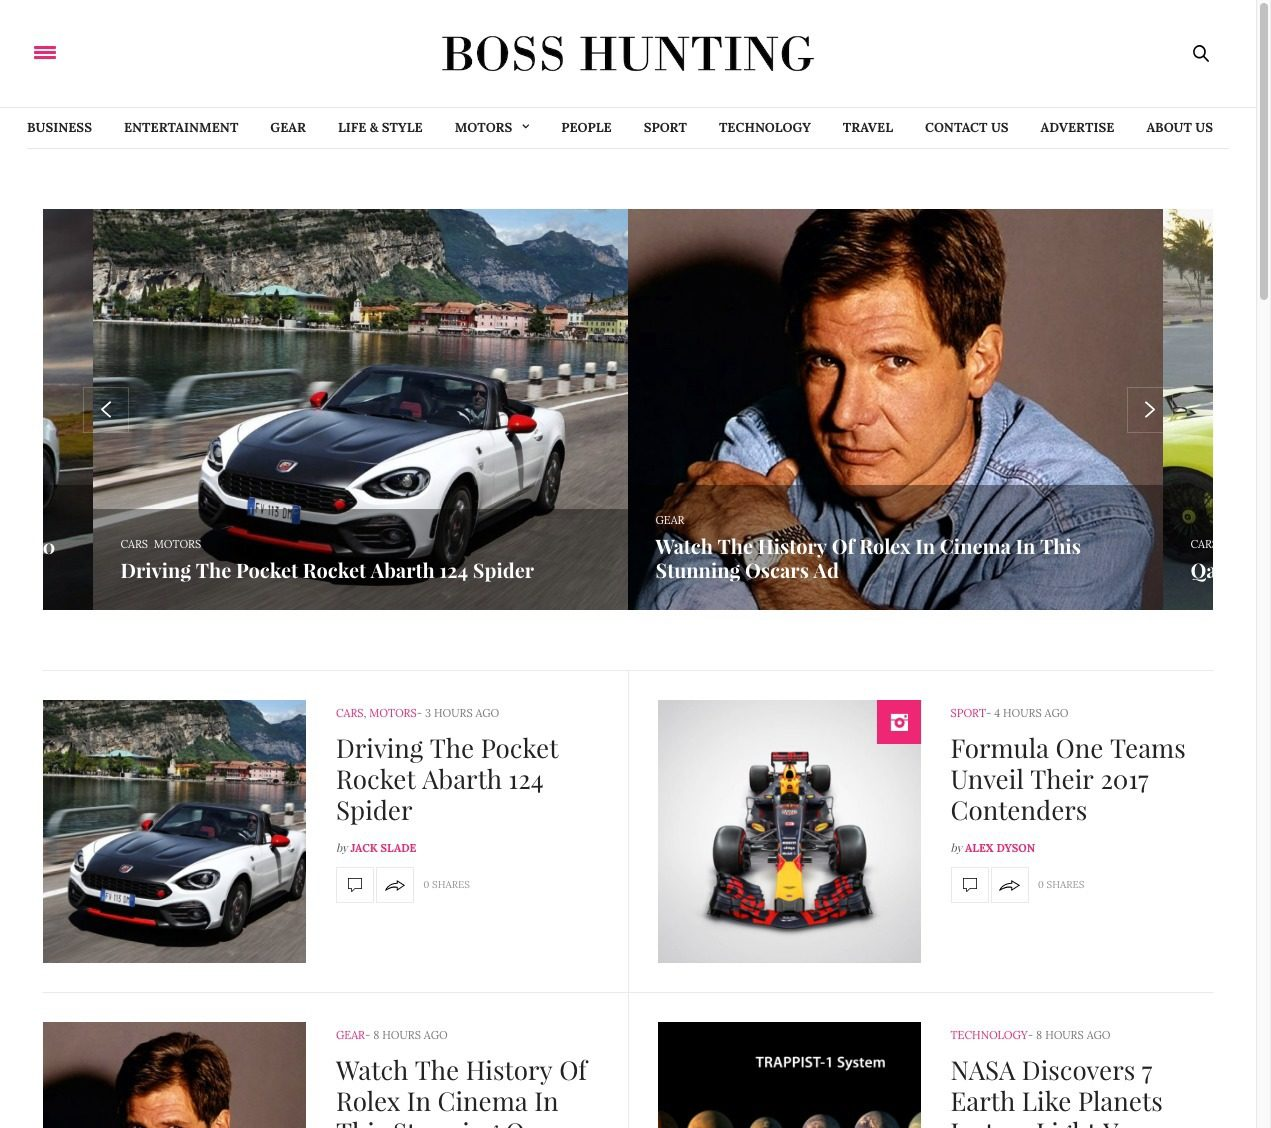 Boss Hunting Magazine